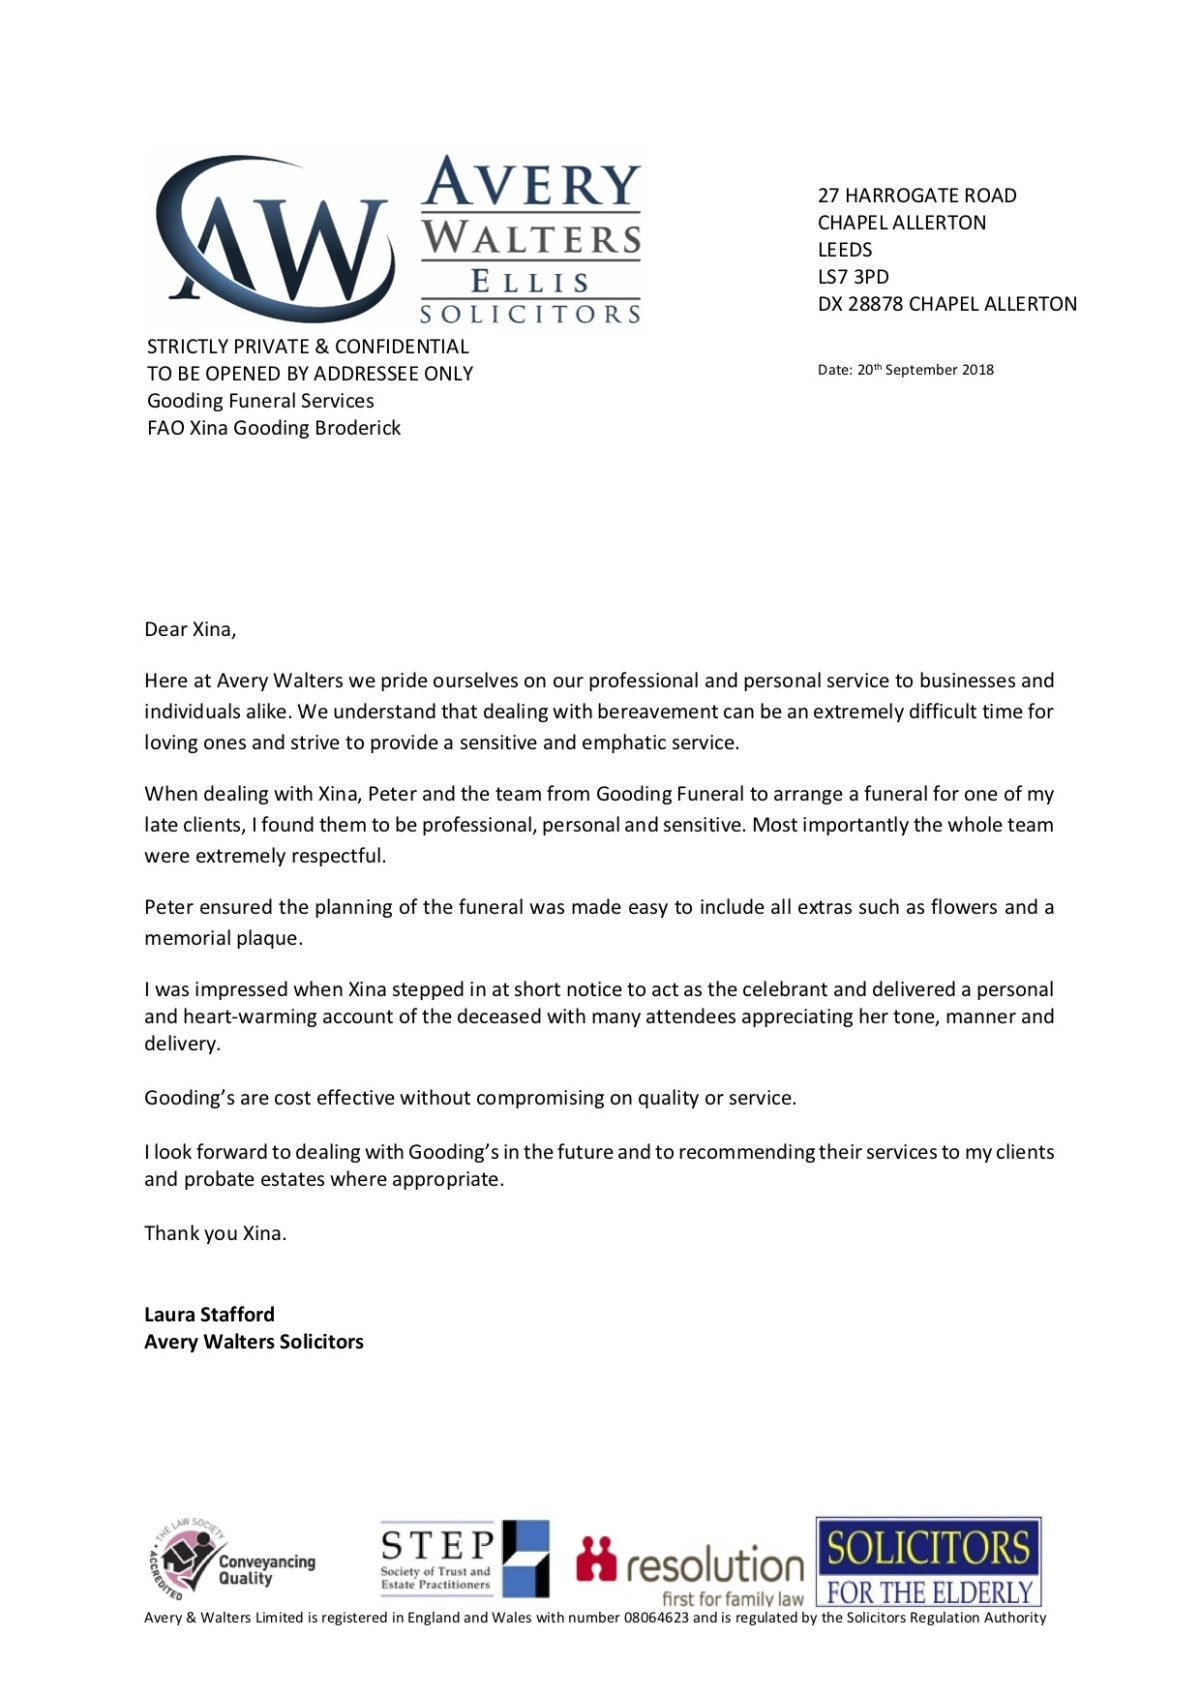 Image of Testimonial from Avery Walters Solicitors